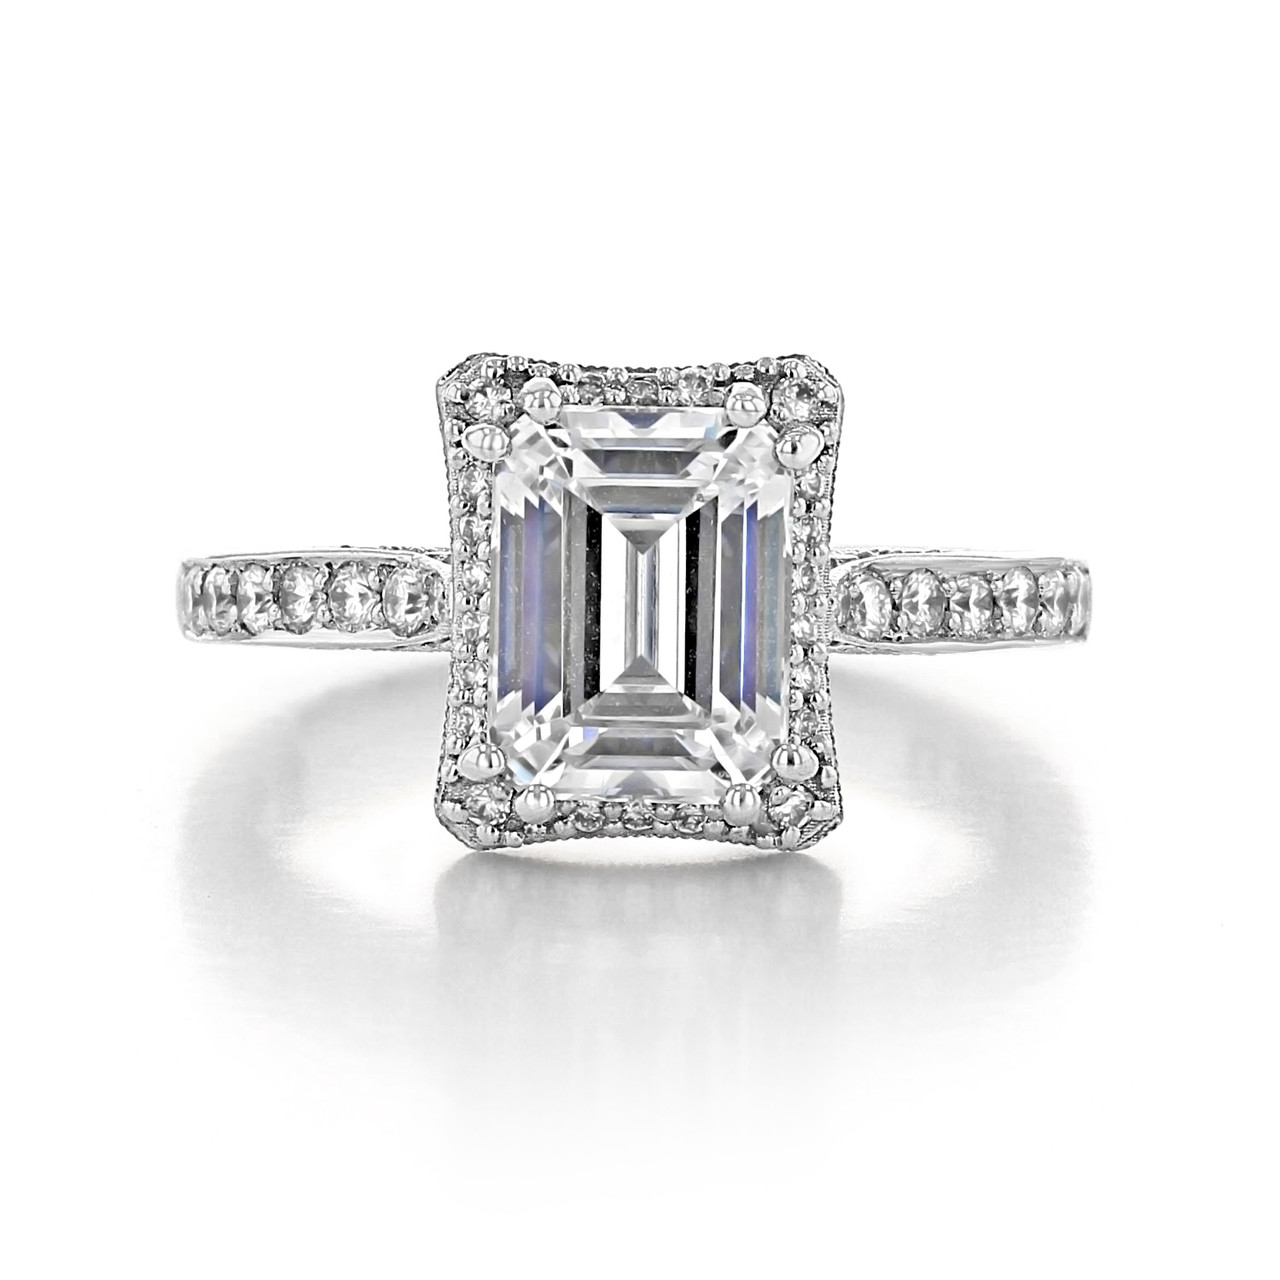 Tacori Dantela 1 50 Ct Platinum Engagement Ring 2620ecmdp